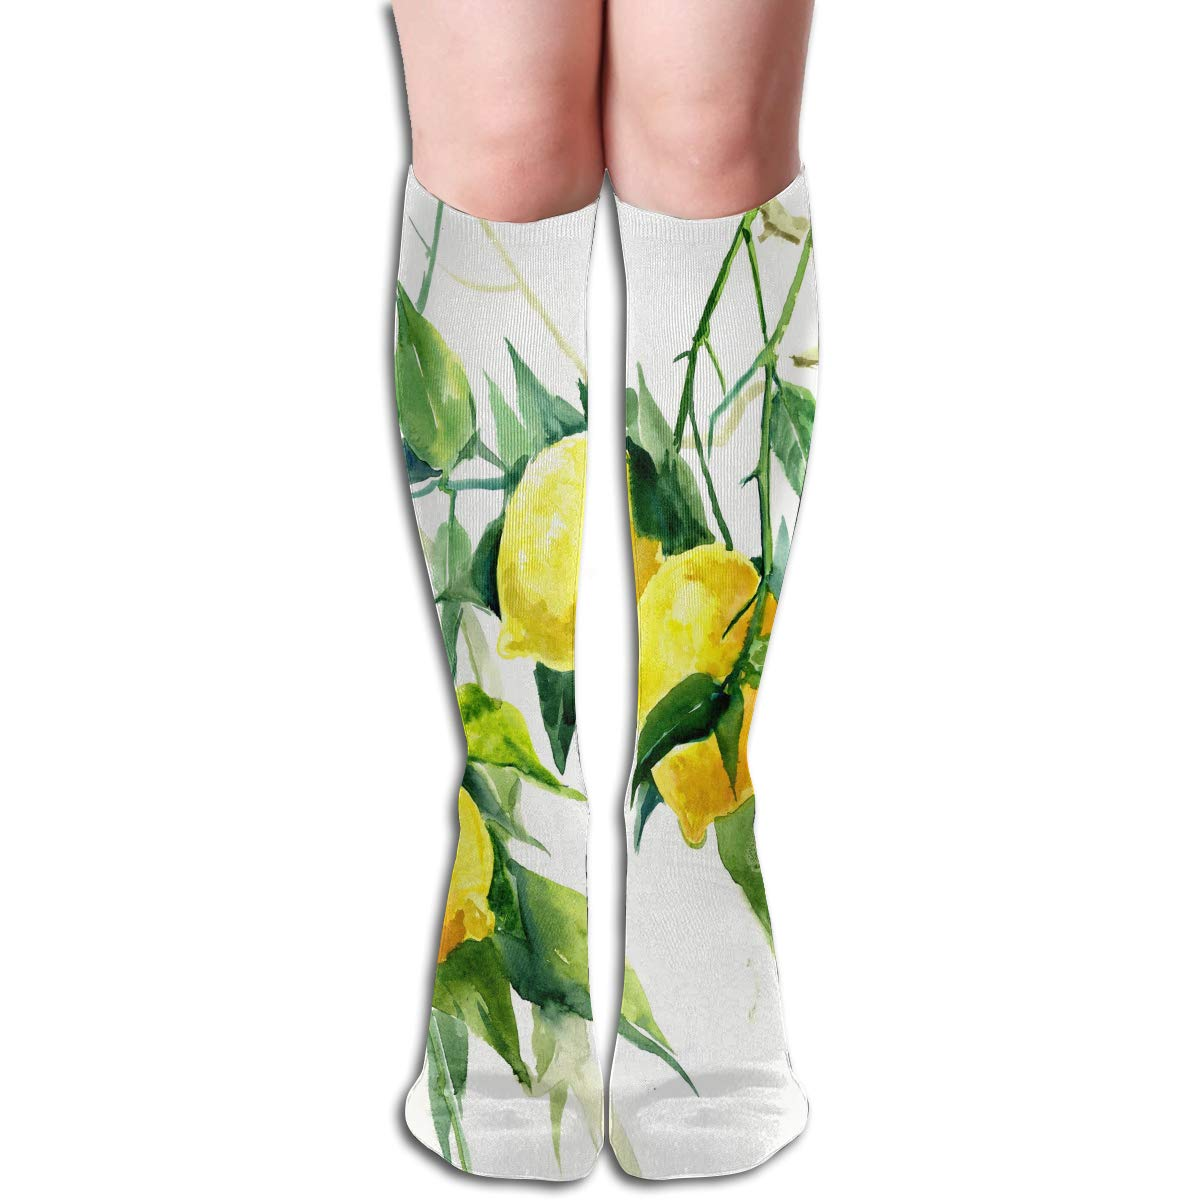 Women Socks Over Knee Watercolor Painting Of Flowers Winter Inspiring Halloween